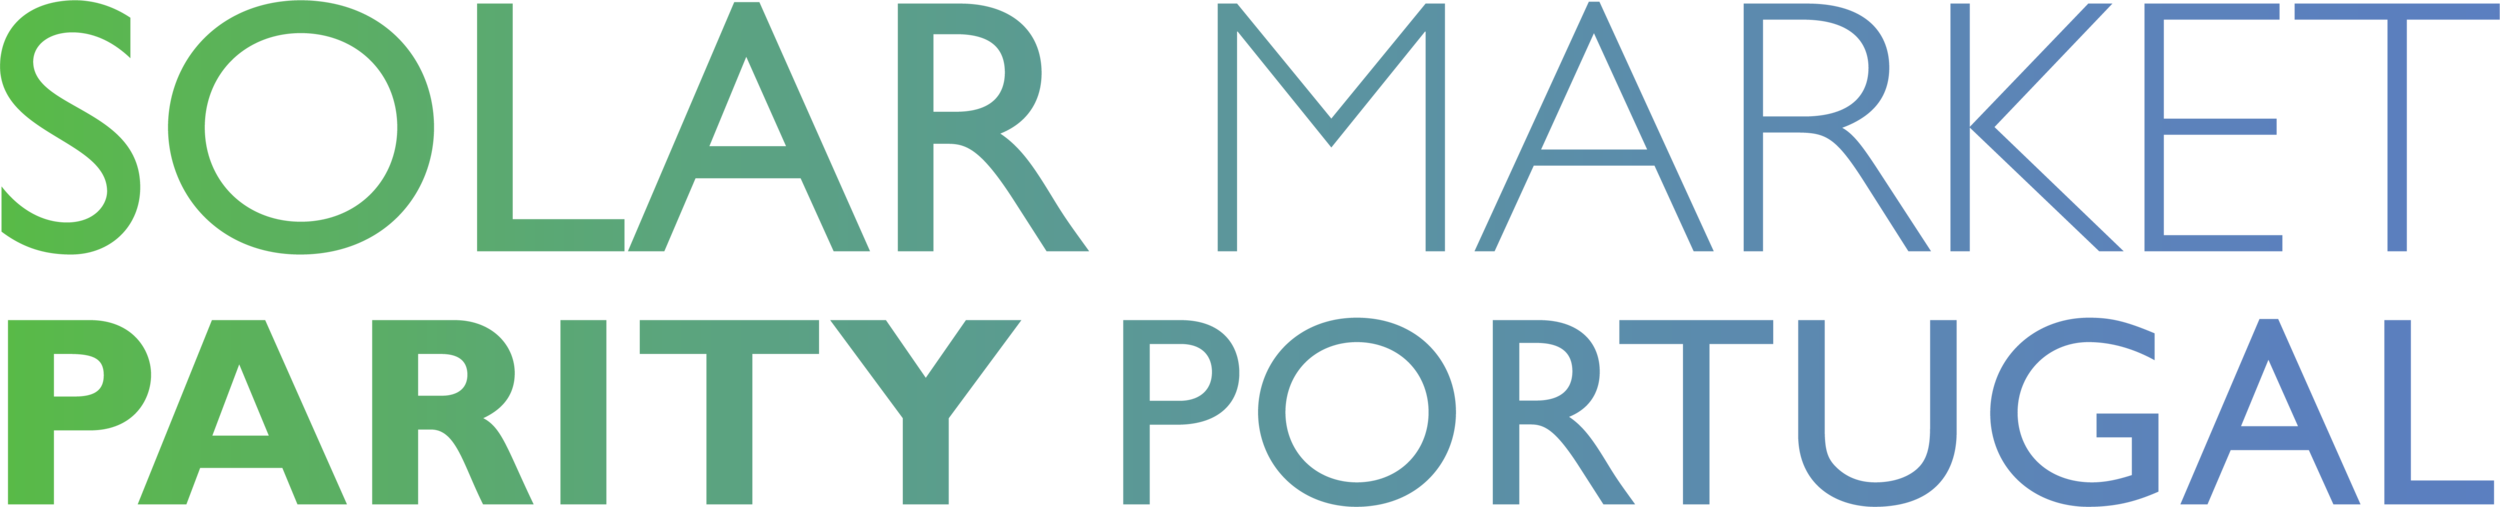 Logo - Solar Market Parity Portugal 2019 (Green and Blue) (without date) (300DPI) (PNG).png